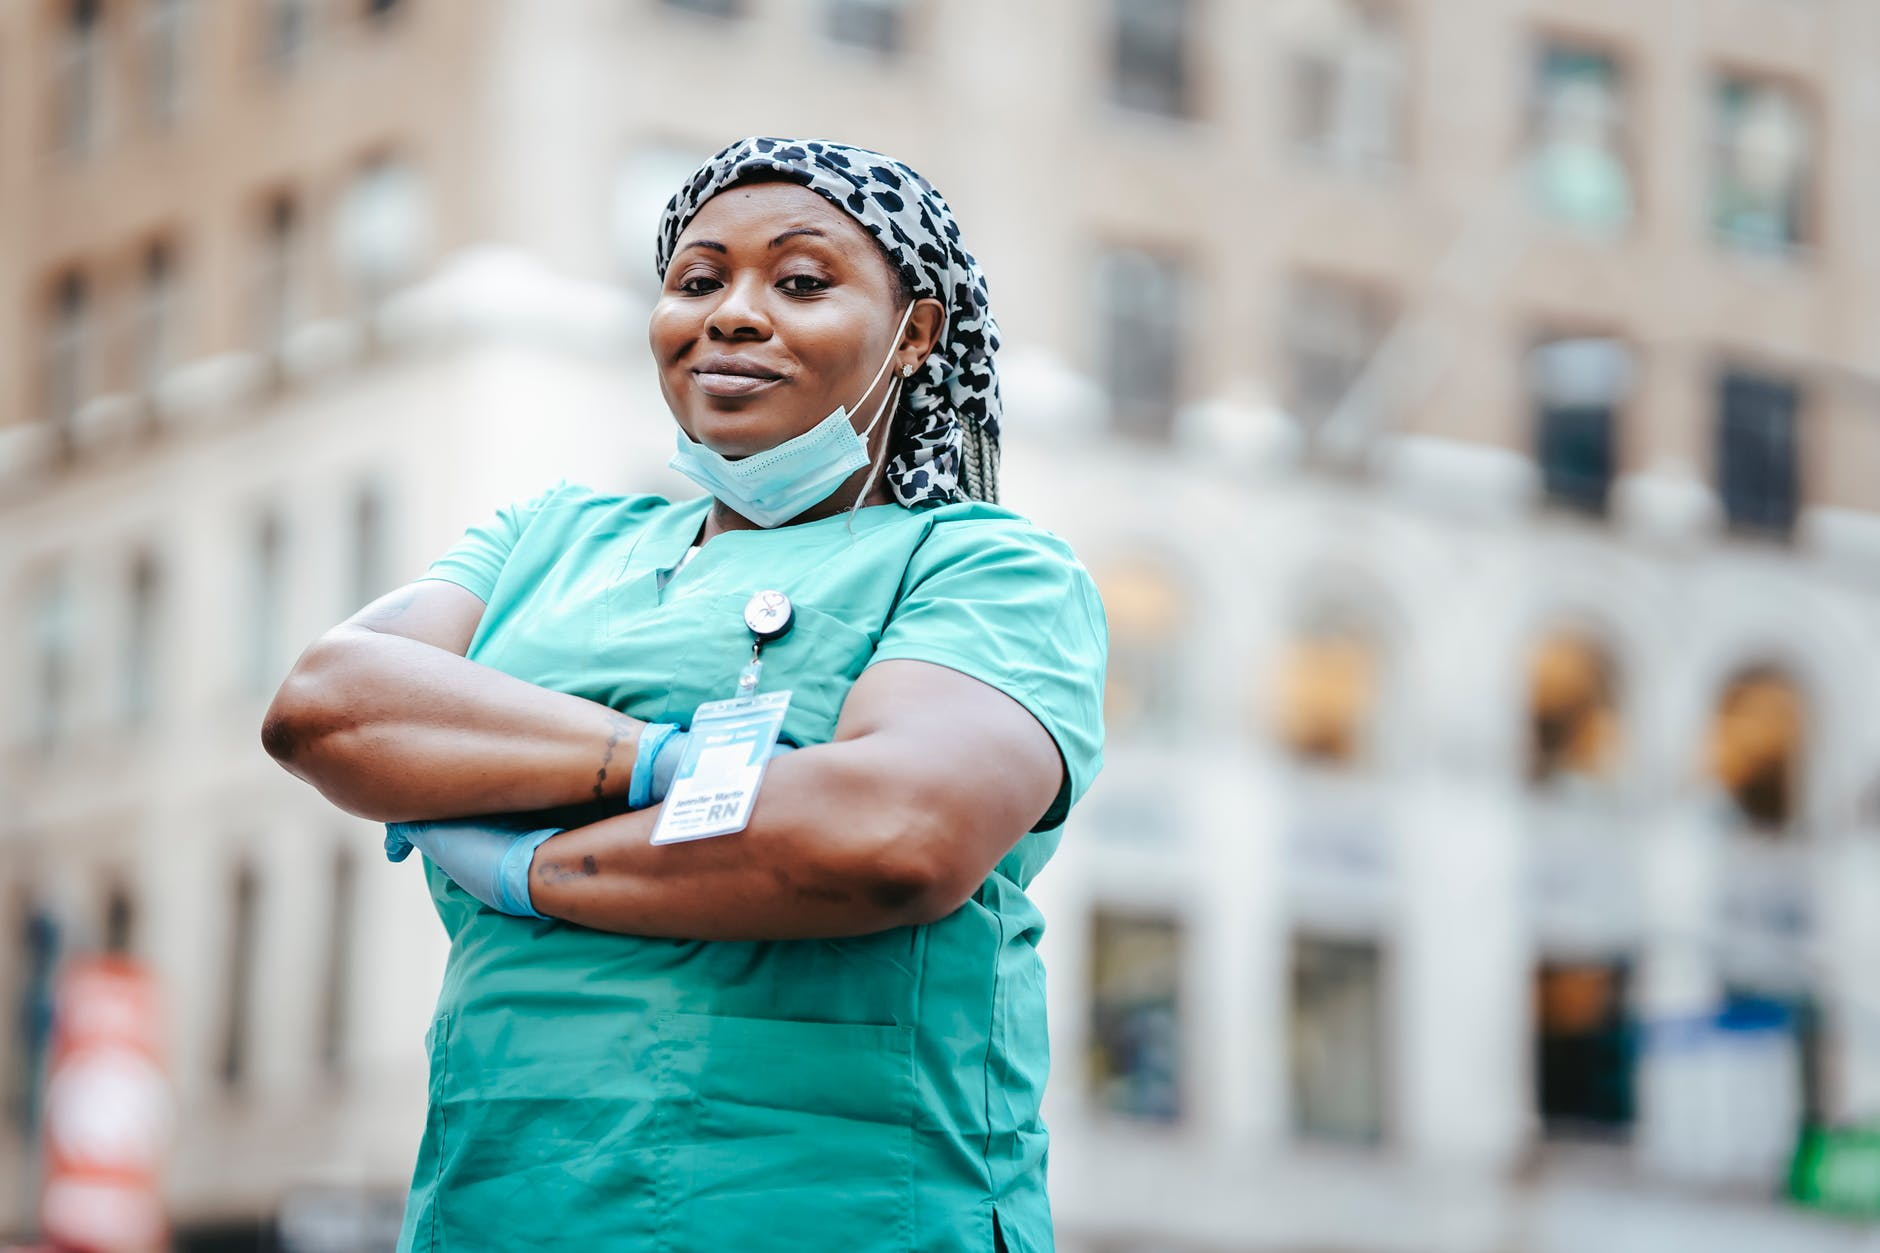 The Backbone Of SA's Healthcare System